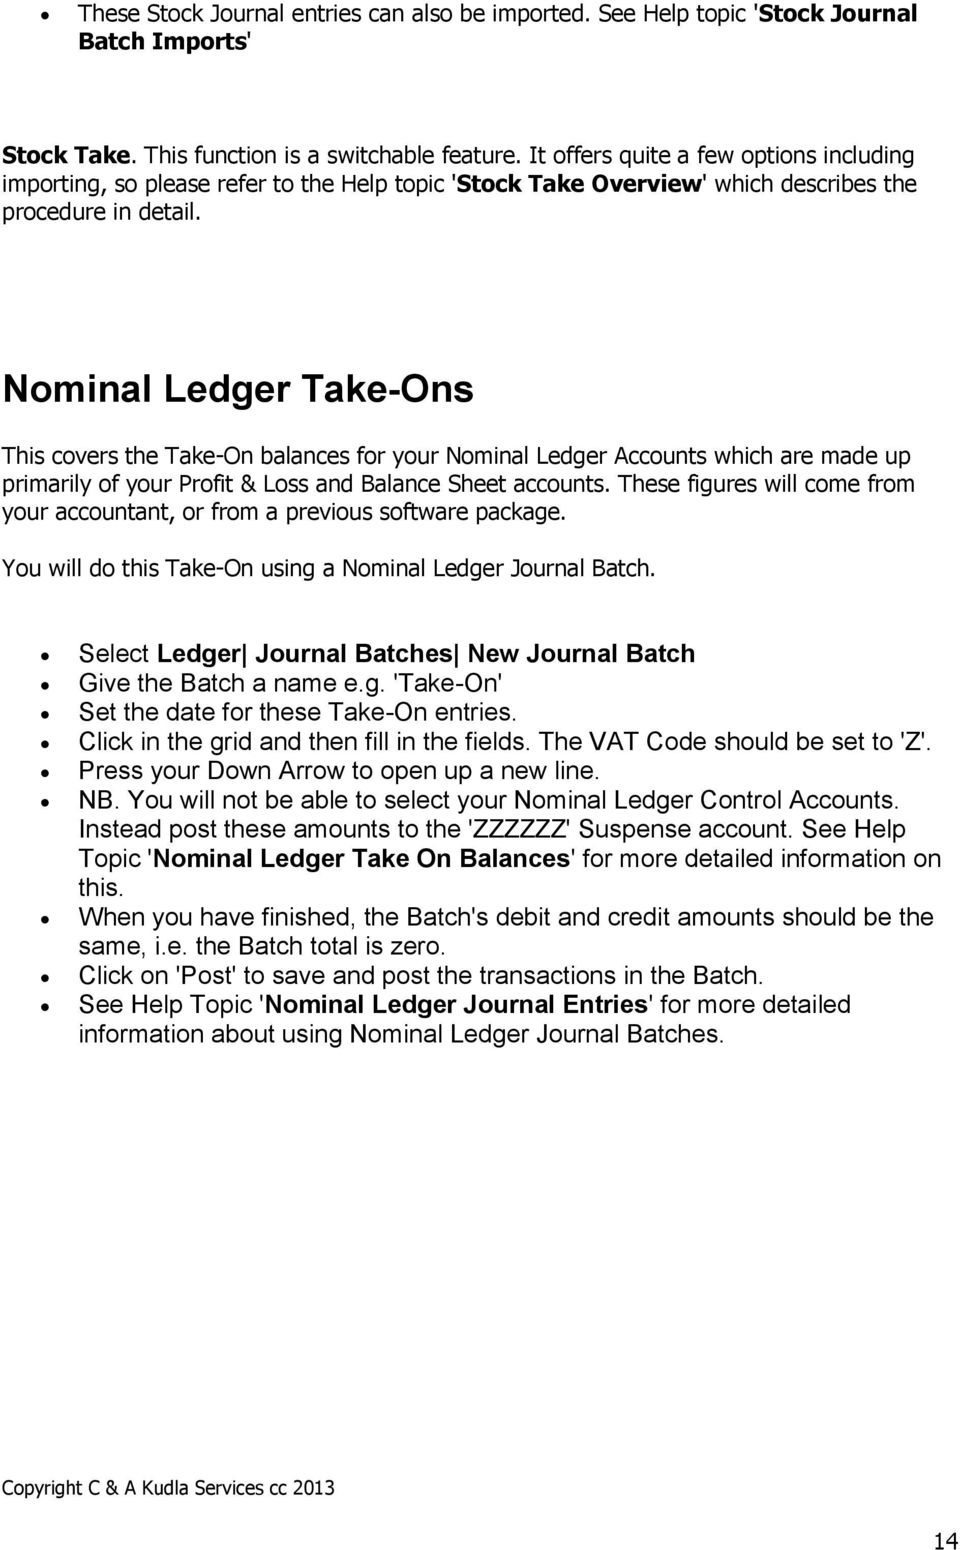 Nominal Ledger Take-Ons This covers the Take-On balances for your Nominal Ledger Accounts which are made up primarily of your Profit & Loss and Balance Sheet accounts.